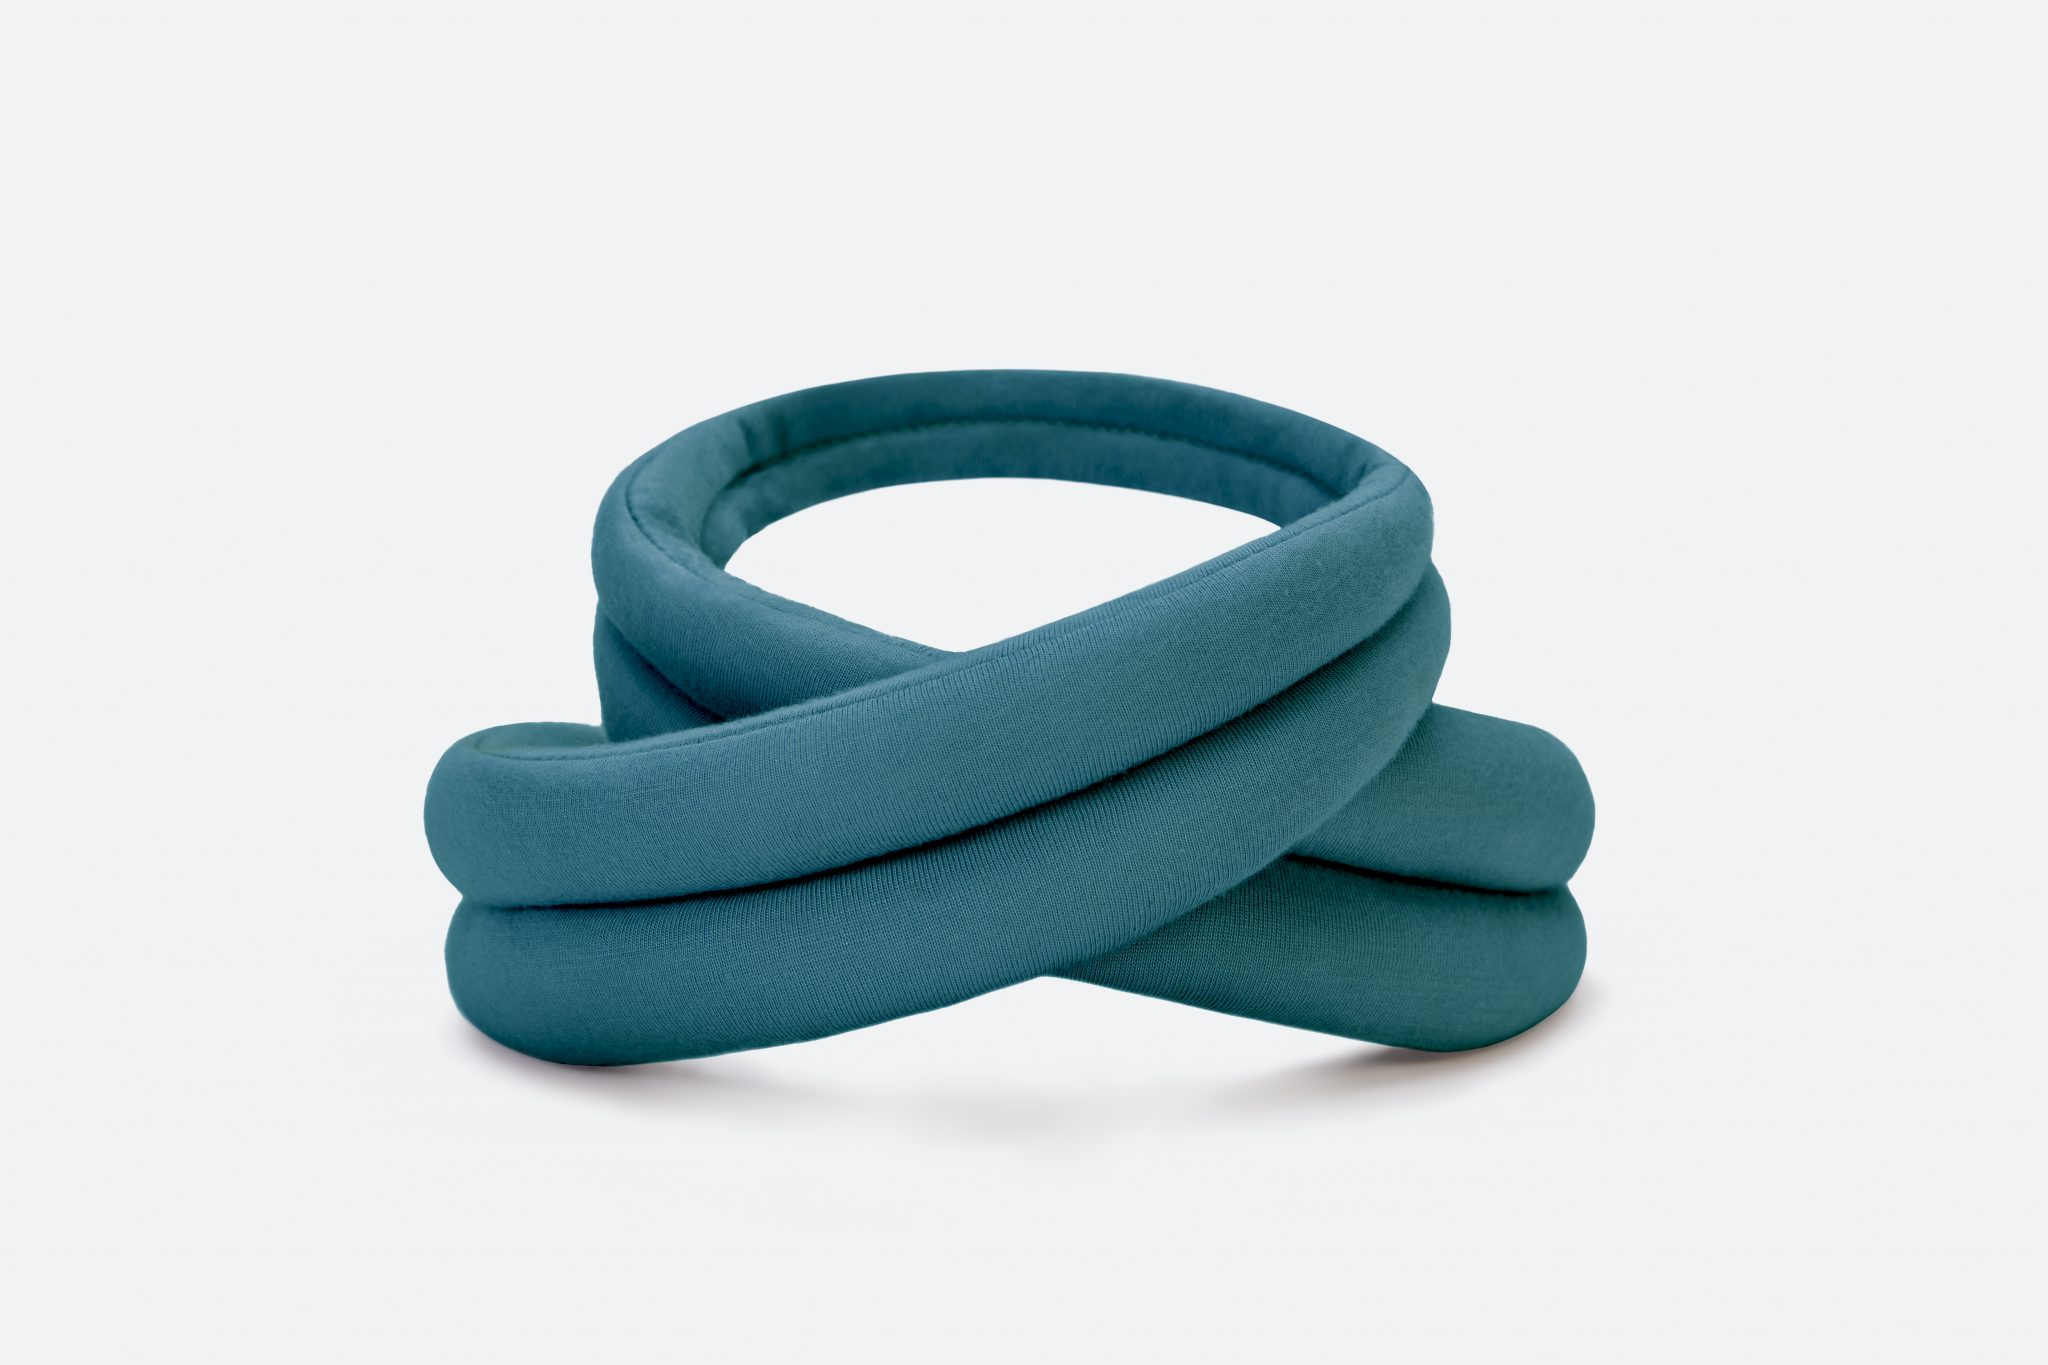 OSTRICHPILLOW LOOP PD 01